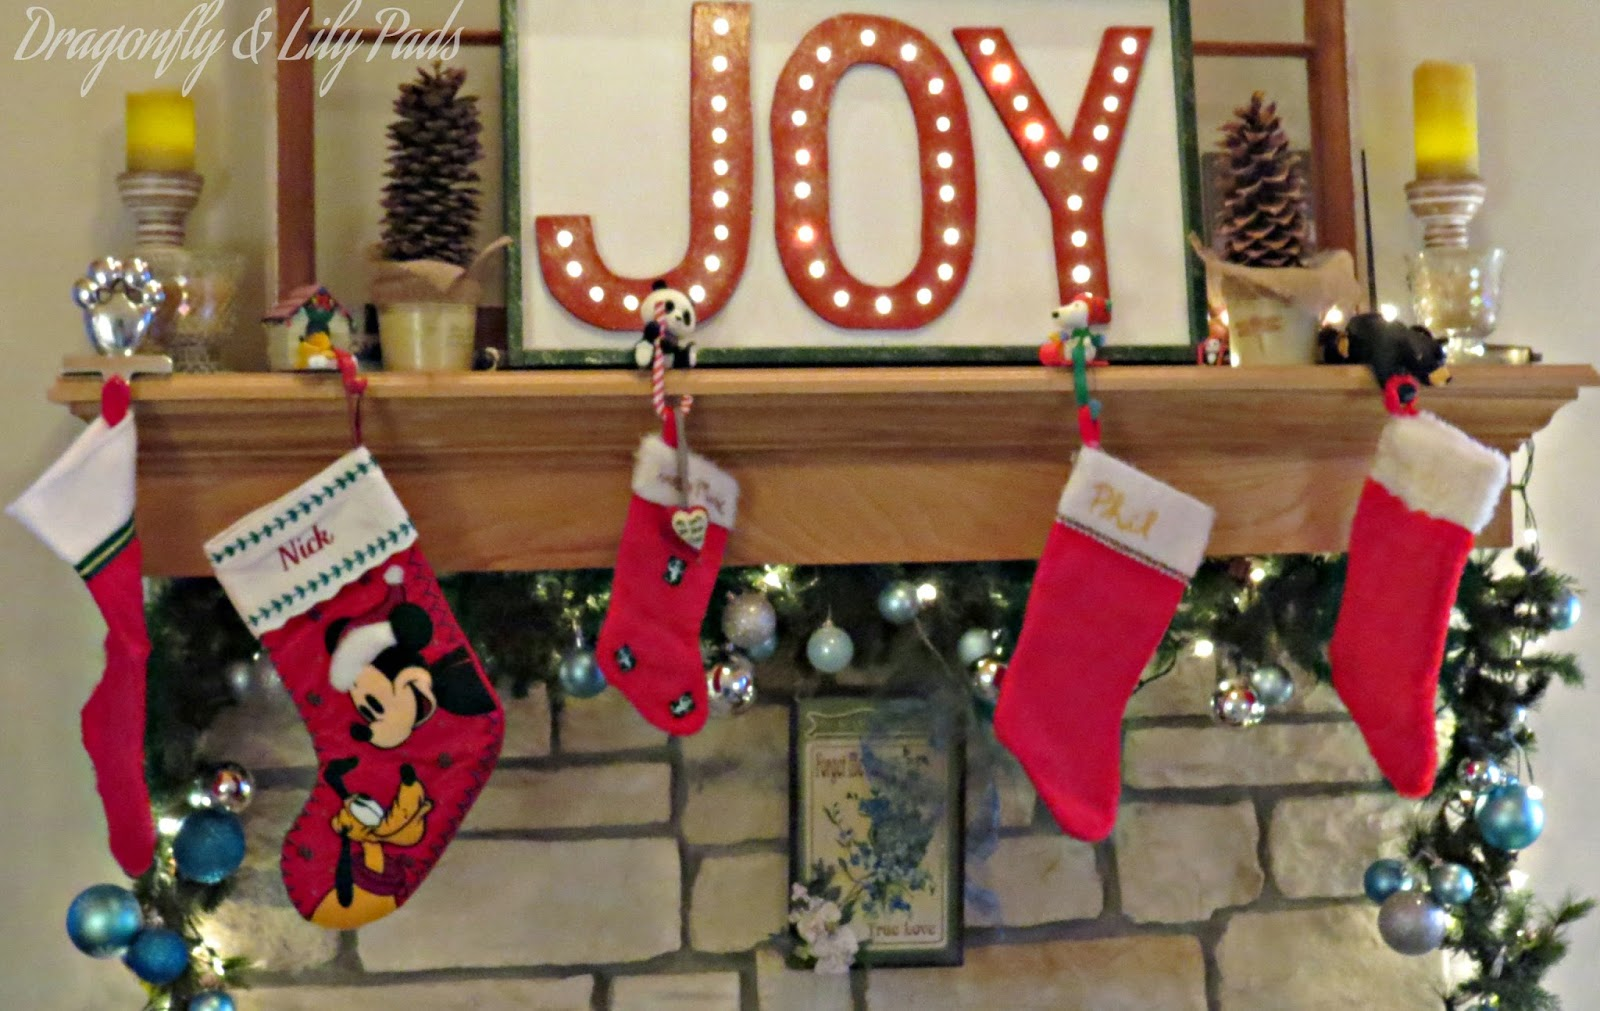 Joy Marquee Sign, Christmas Mantel, DecoArt Champagne Craft Twinkle Paint, Letters Edge of Frame